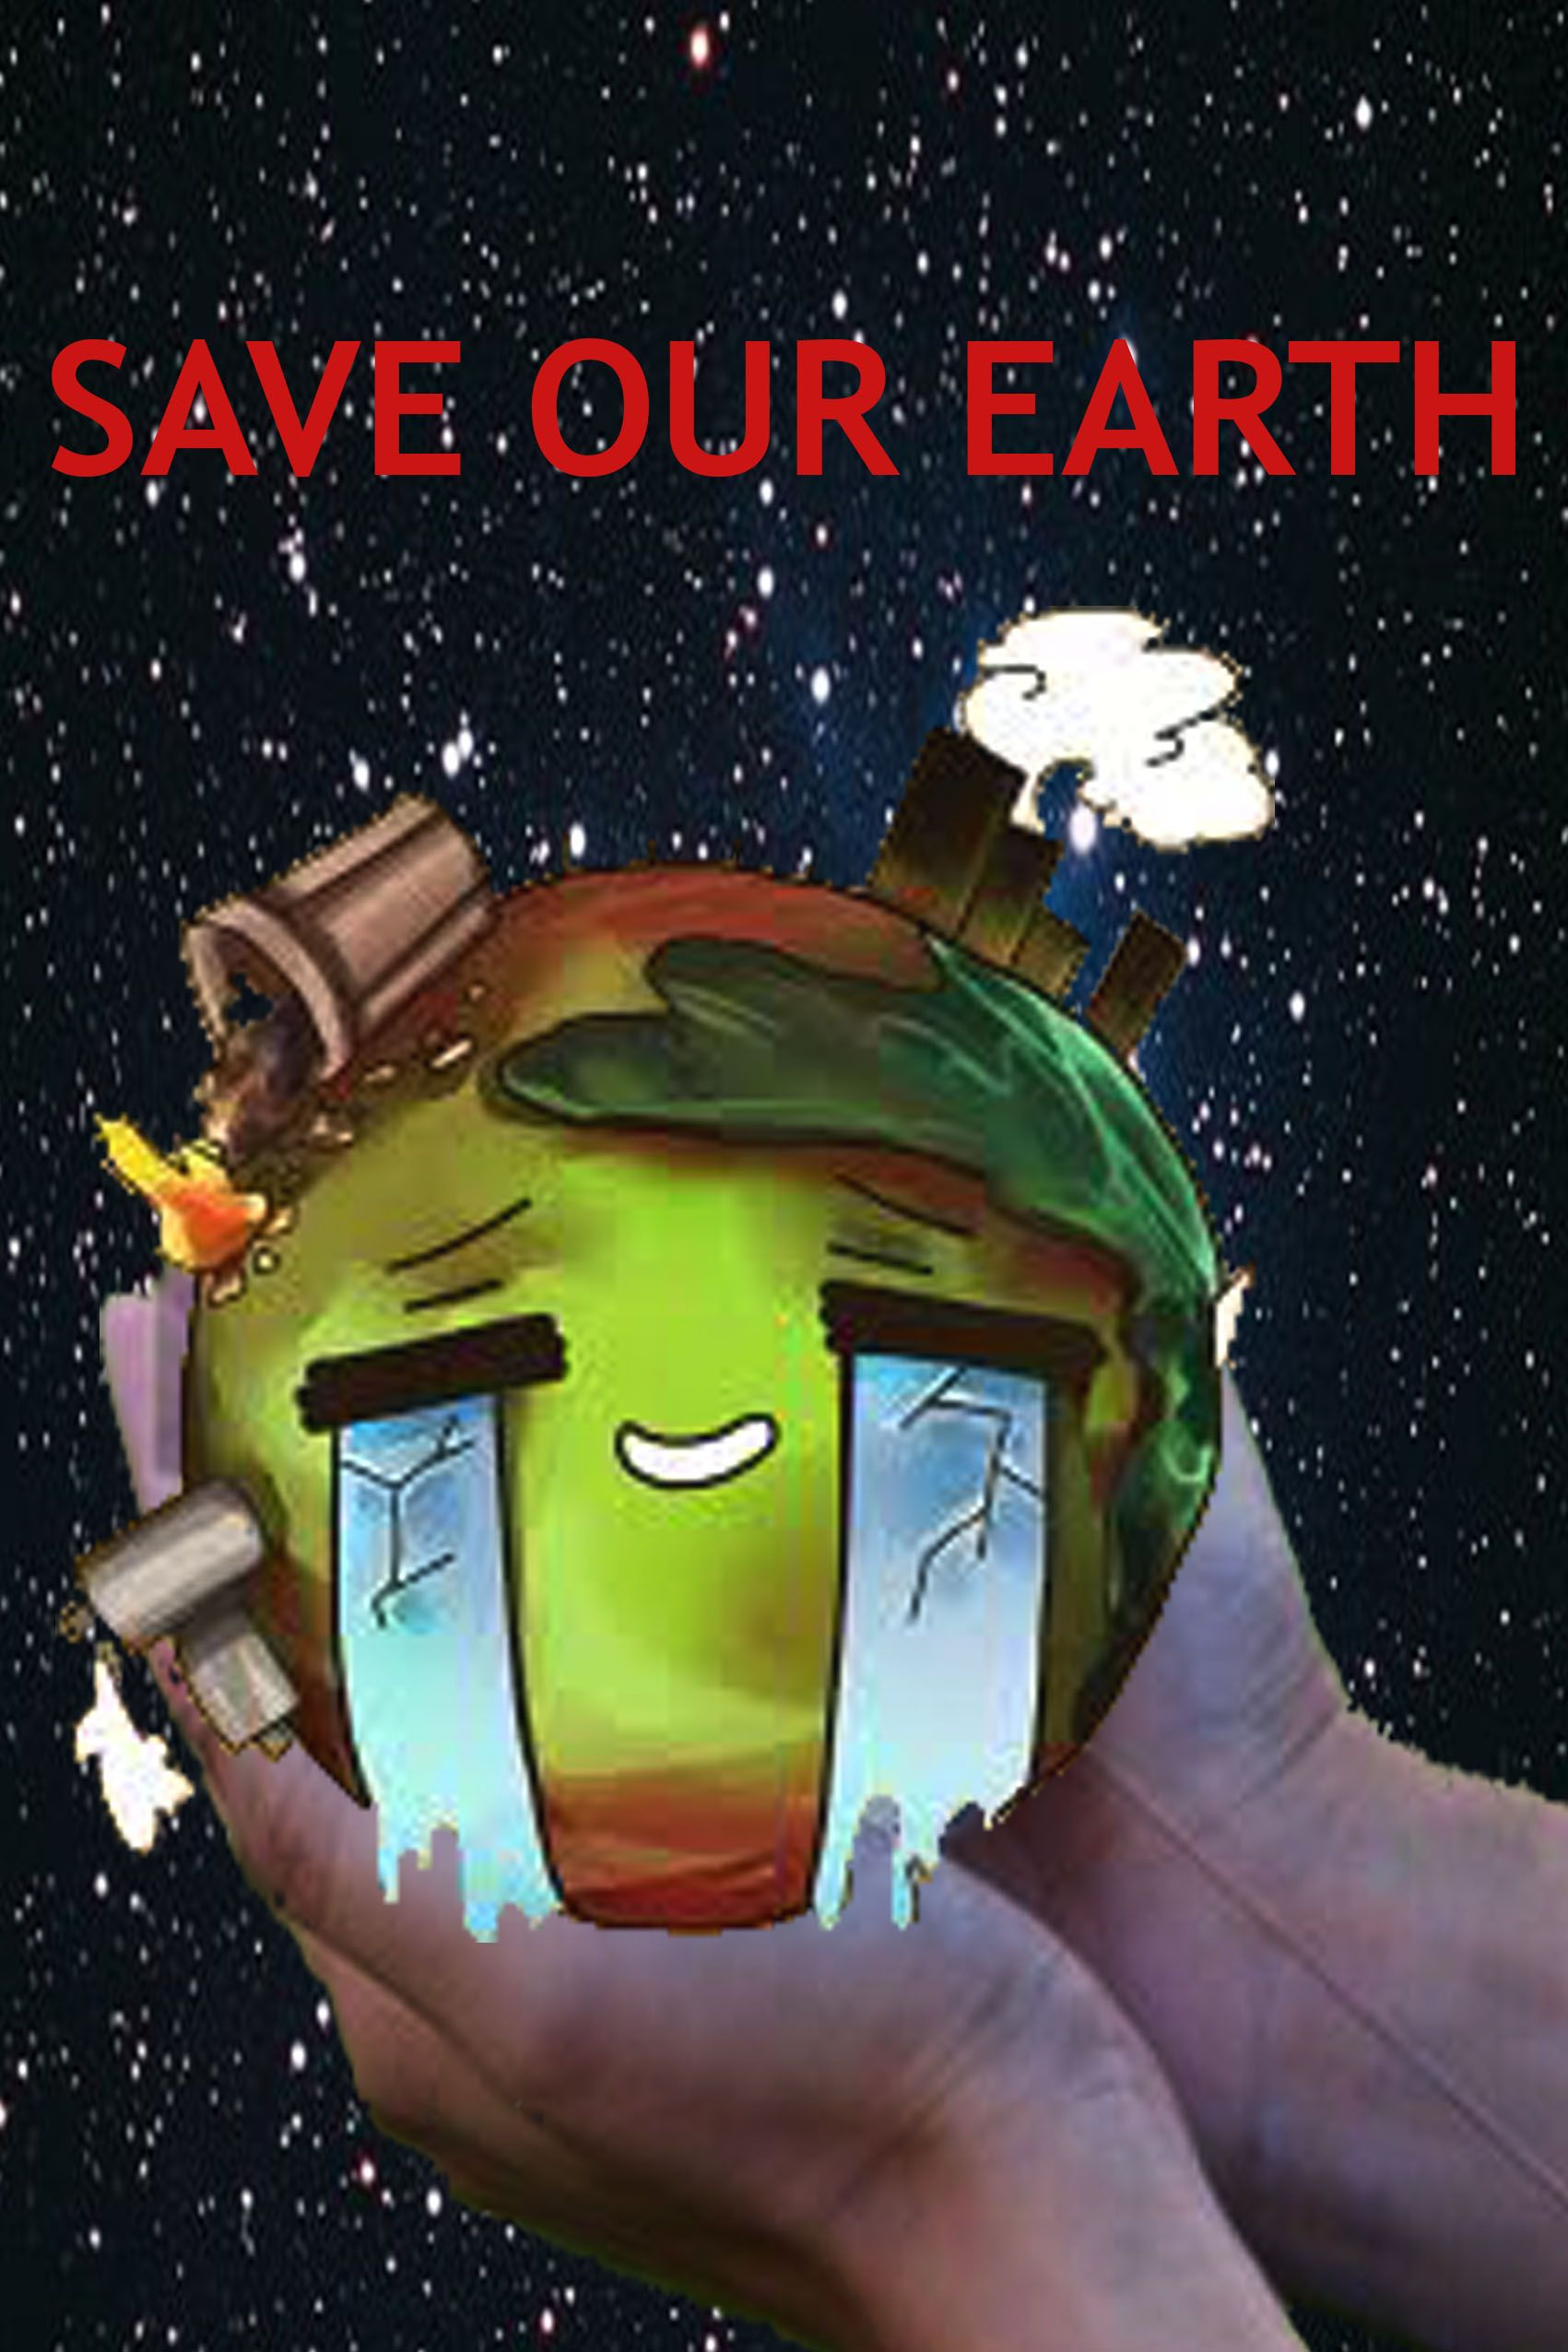 Poster design on save earth - Save Our Earth Poster By Ghina98 On Deviantart